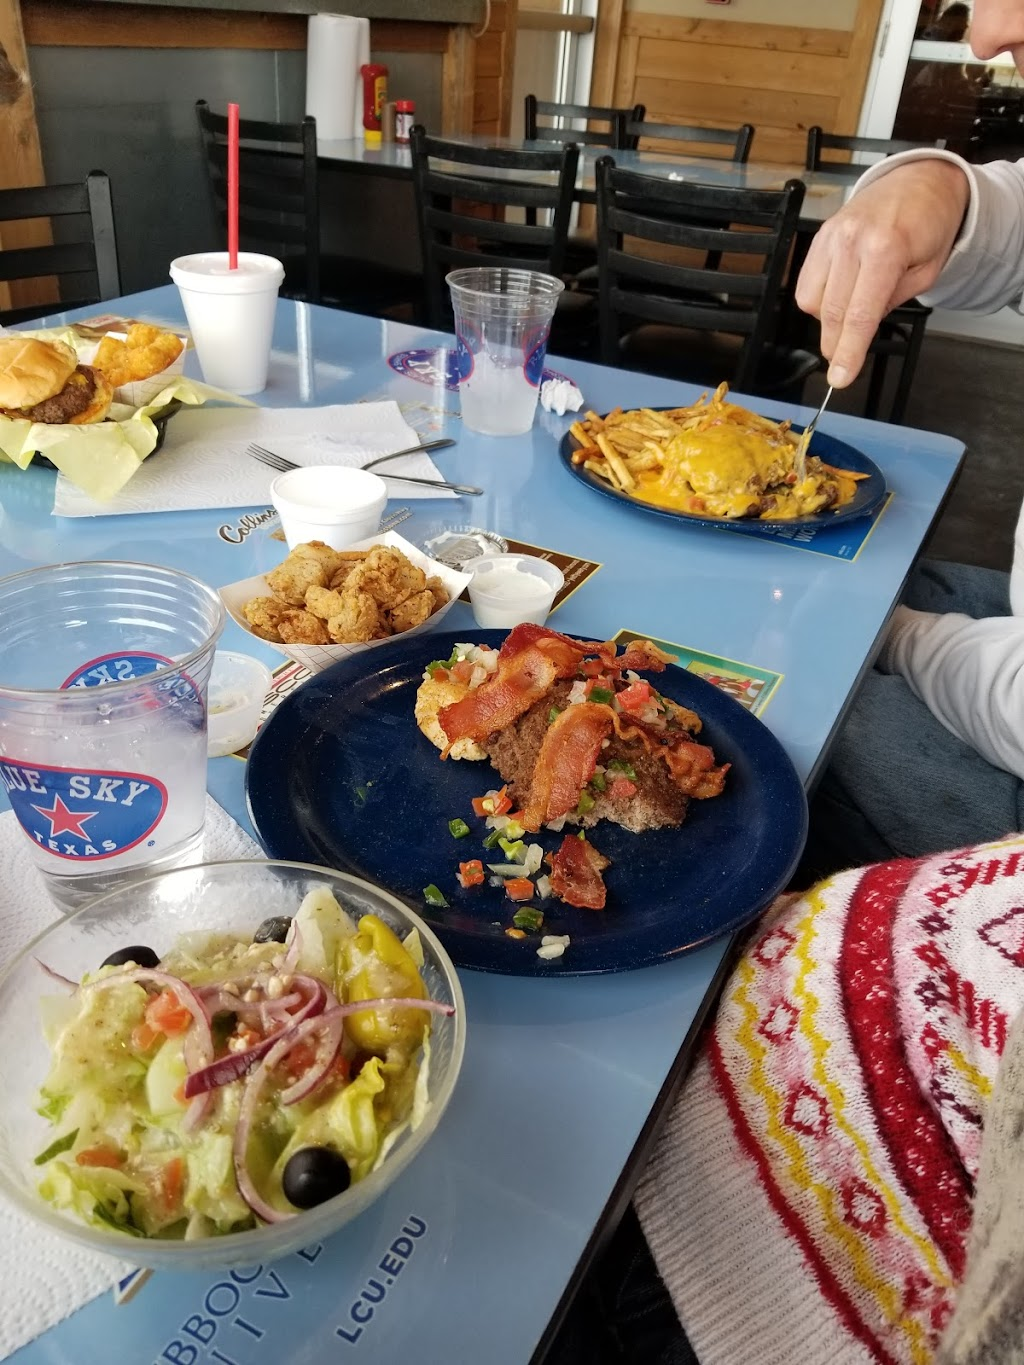 Blue Sky Texas - meal takeaway    Photo 10 of 10   Address: 4416 98th St, Lubbock, TX 79424, USA   Phone: (806) 368-7591